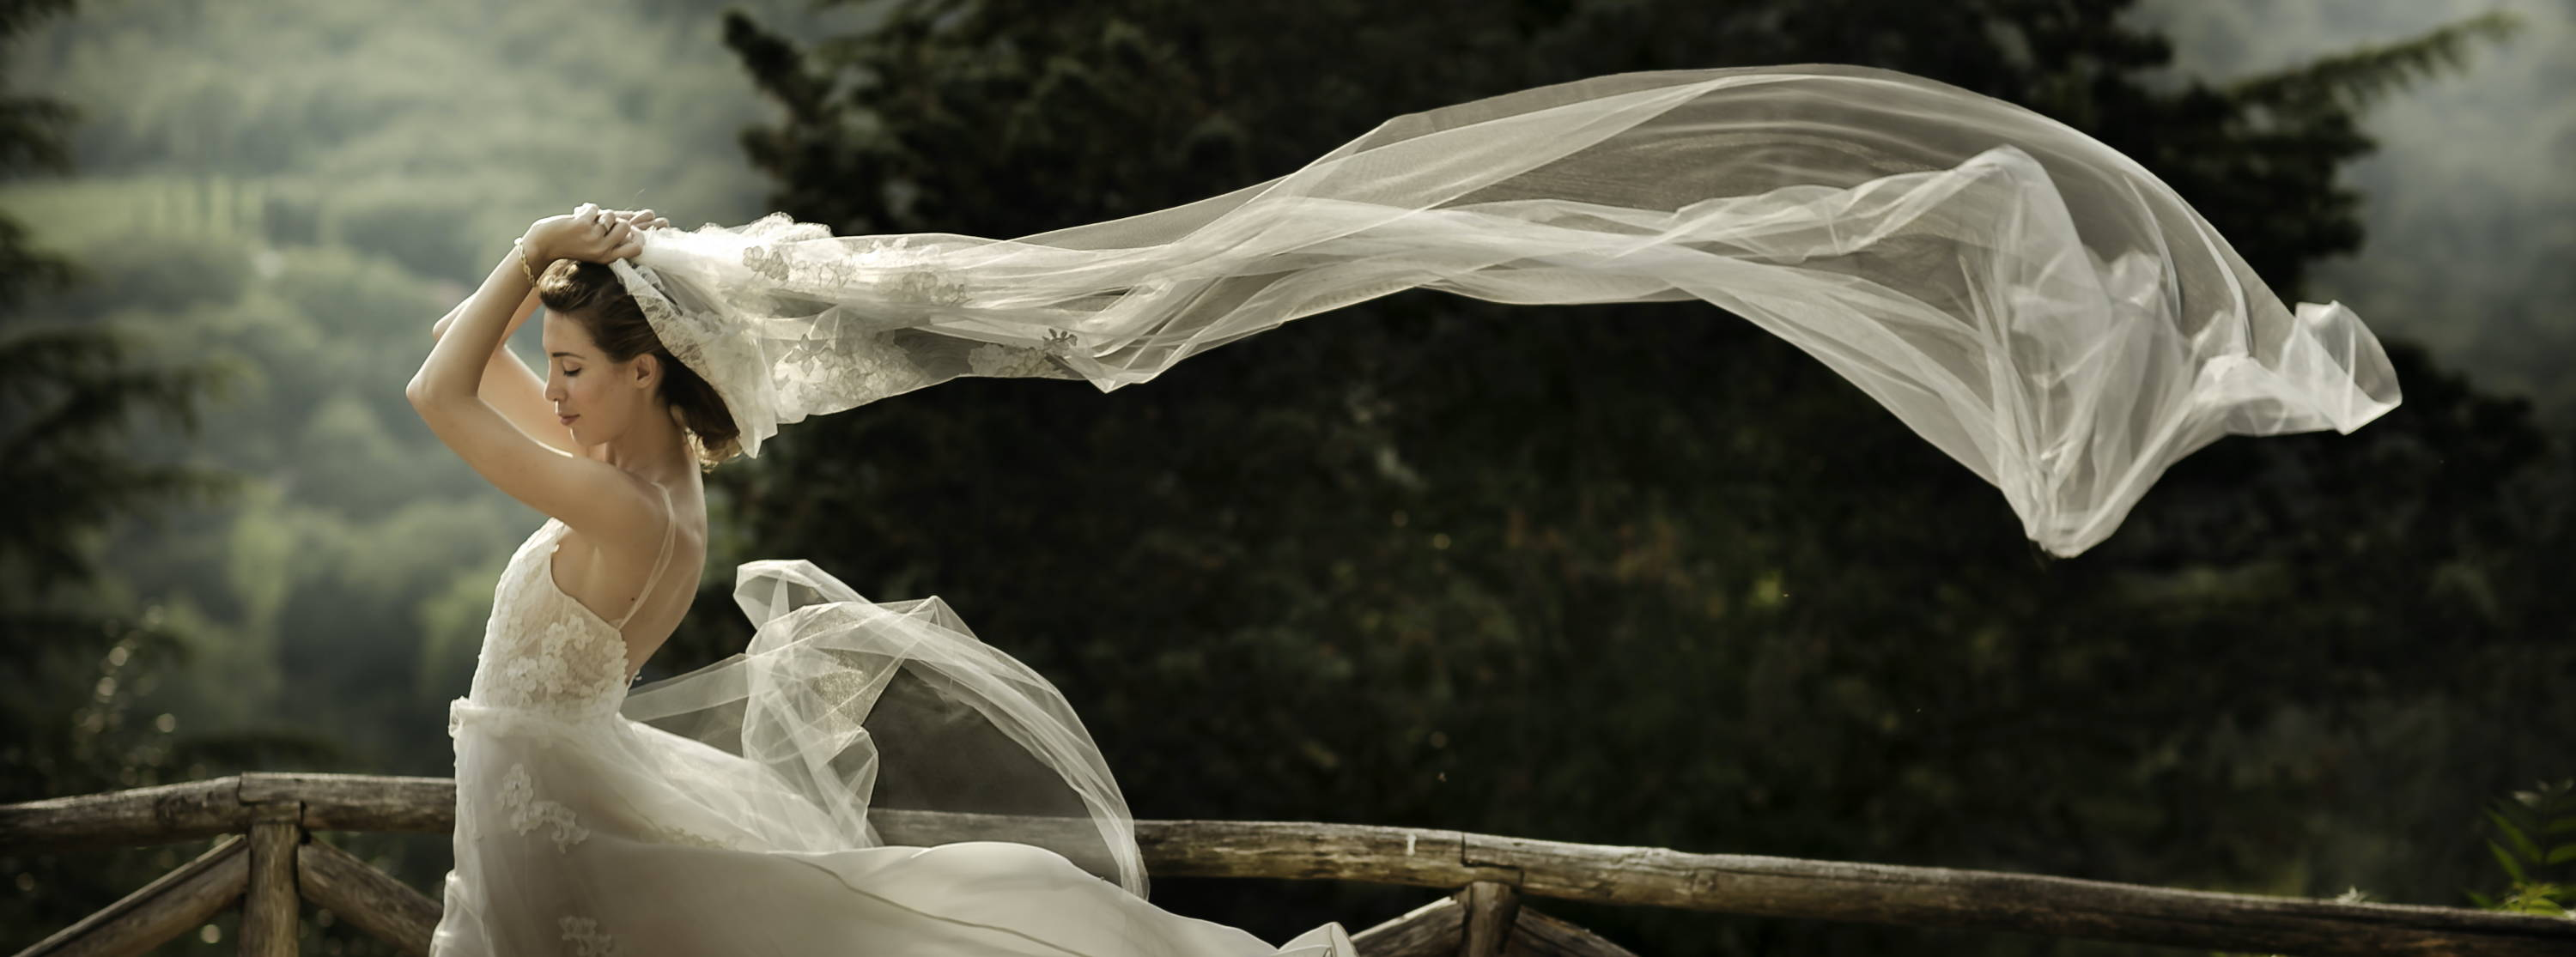 bride wedding veil Tuscany